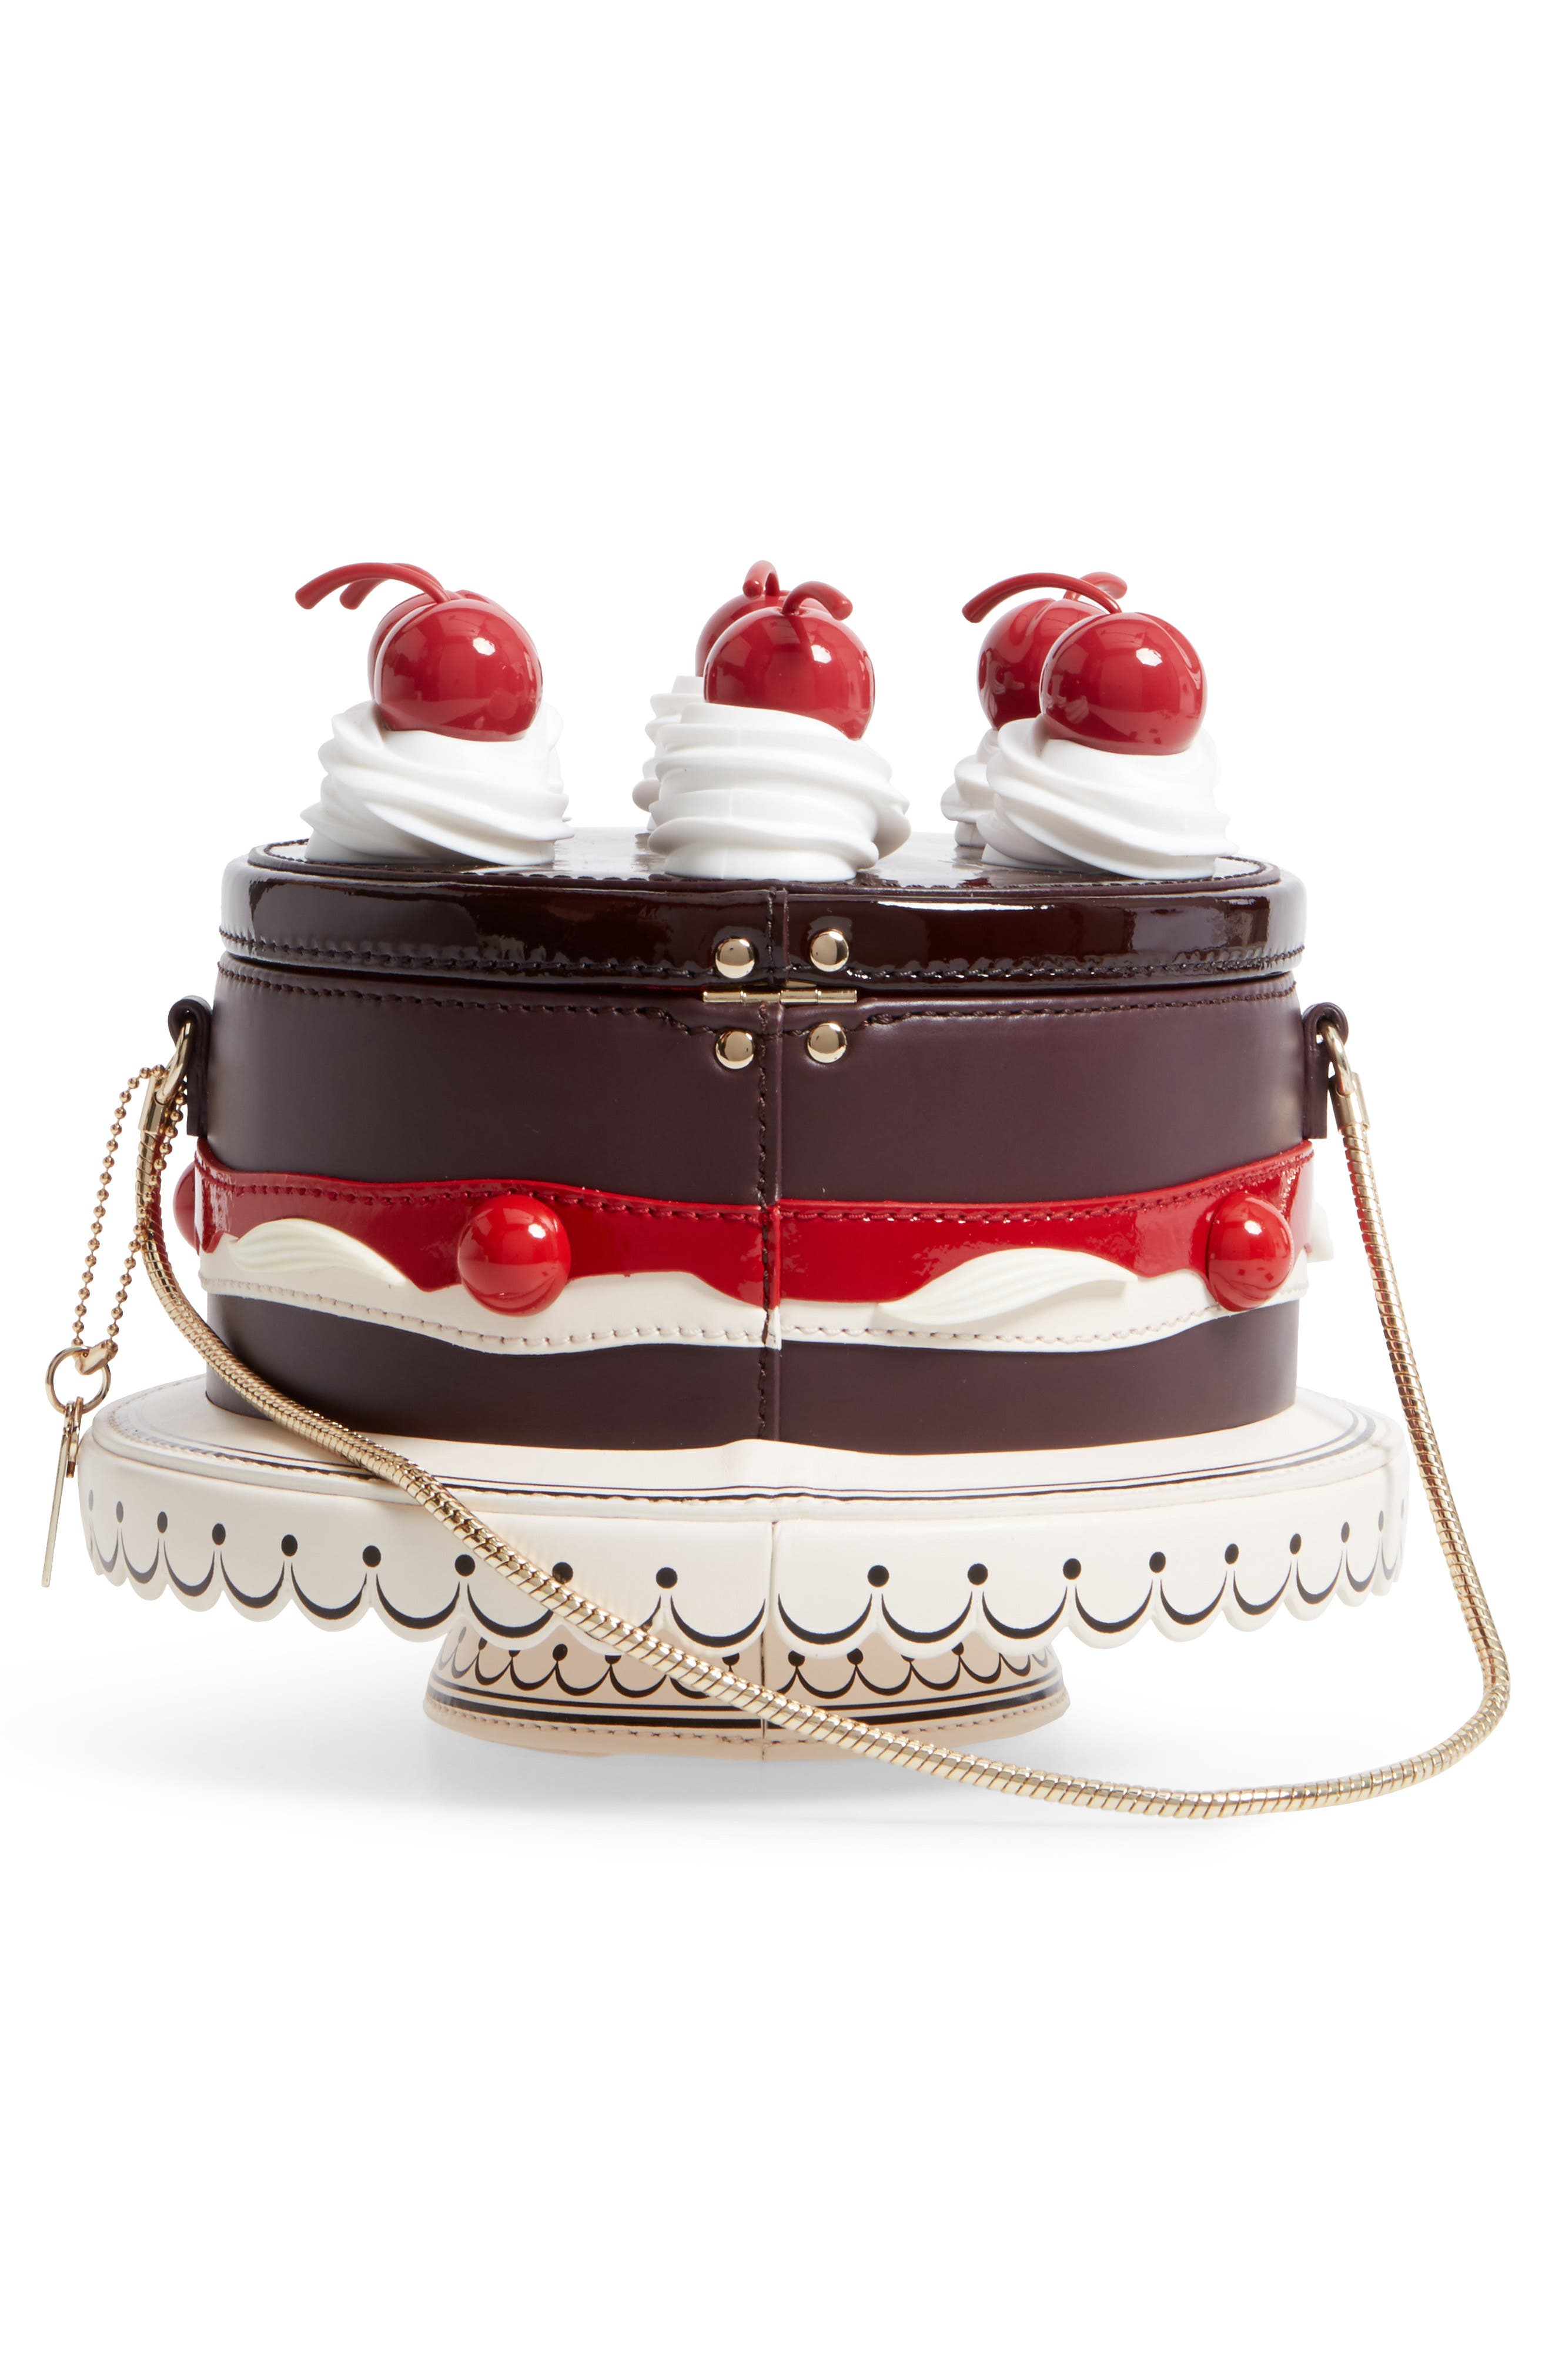 ma cherie - cherry cake leather shoulder bag,                             Alternate thumbnail 3, color,                             200